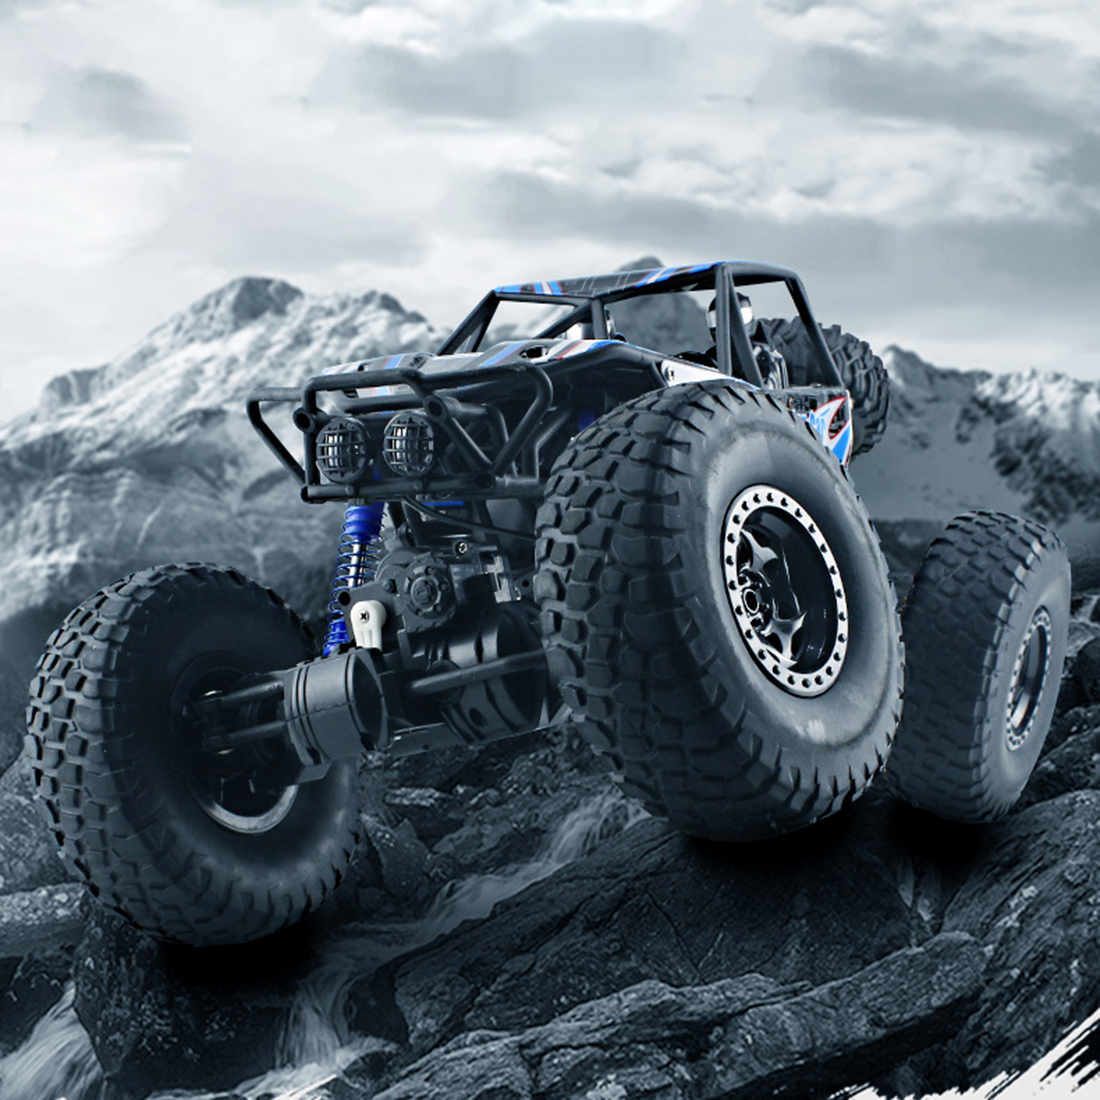 48cm 1:10 4WD 2.4G RC Monster Truck High Speed Racing Car Off Road Vehicle For Child School Play Education Birthday Gift Blue - 6